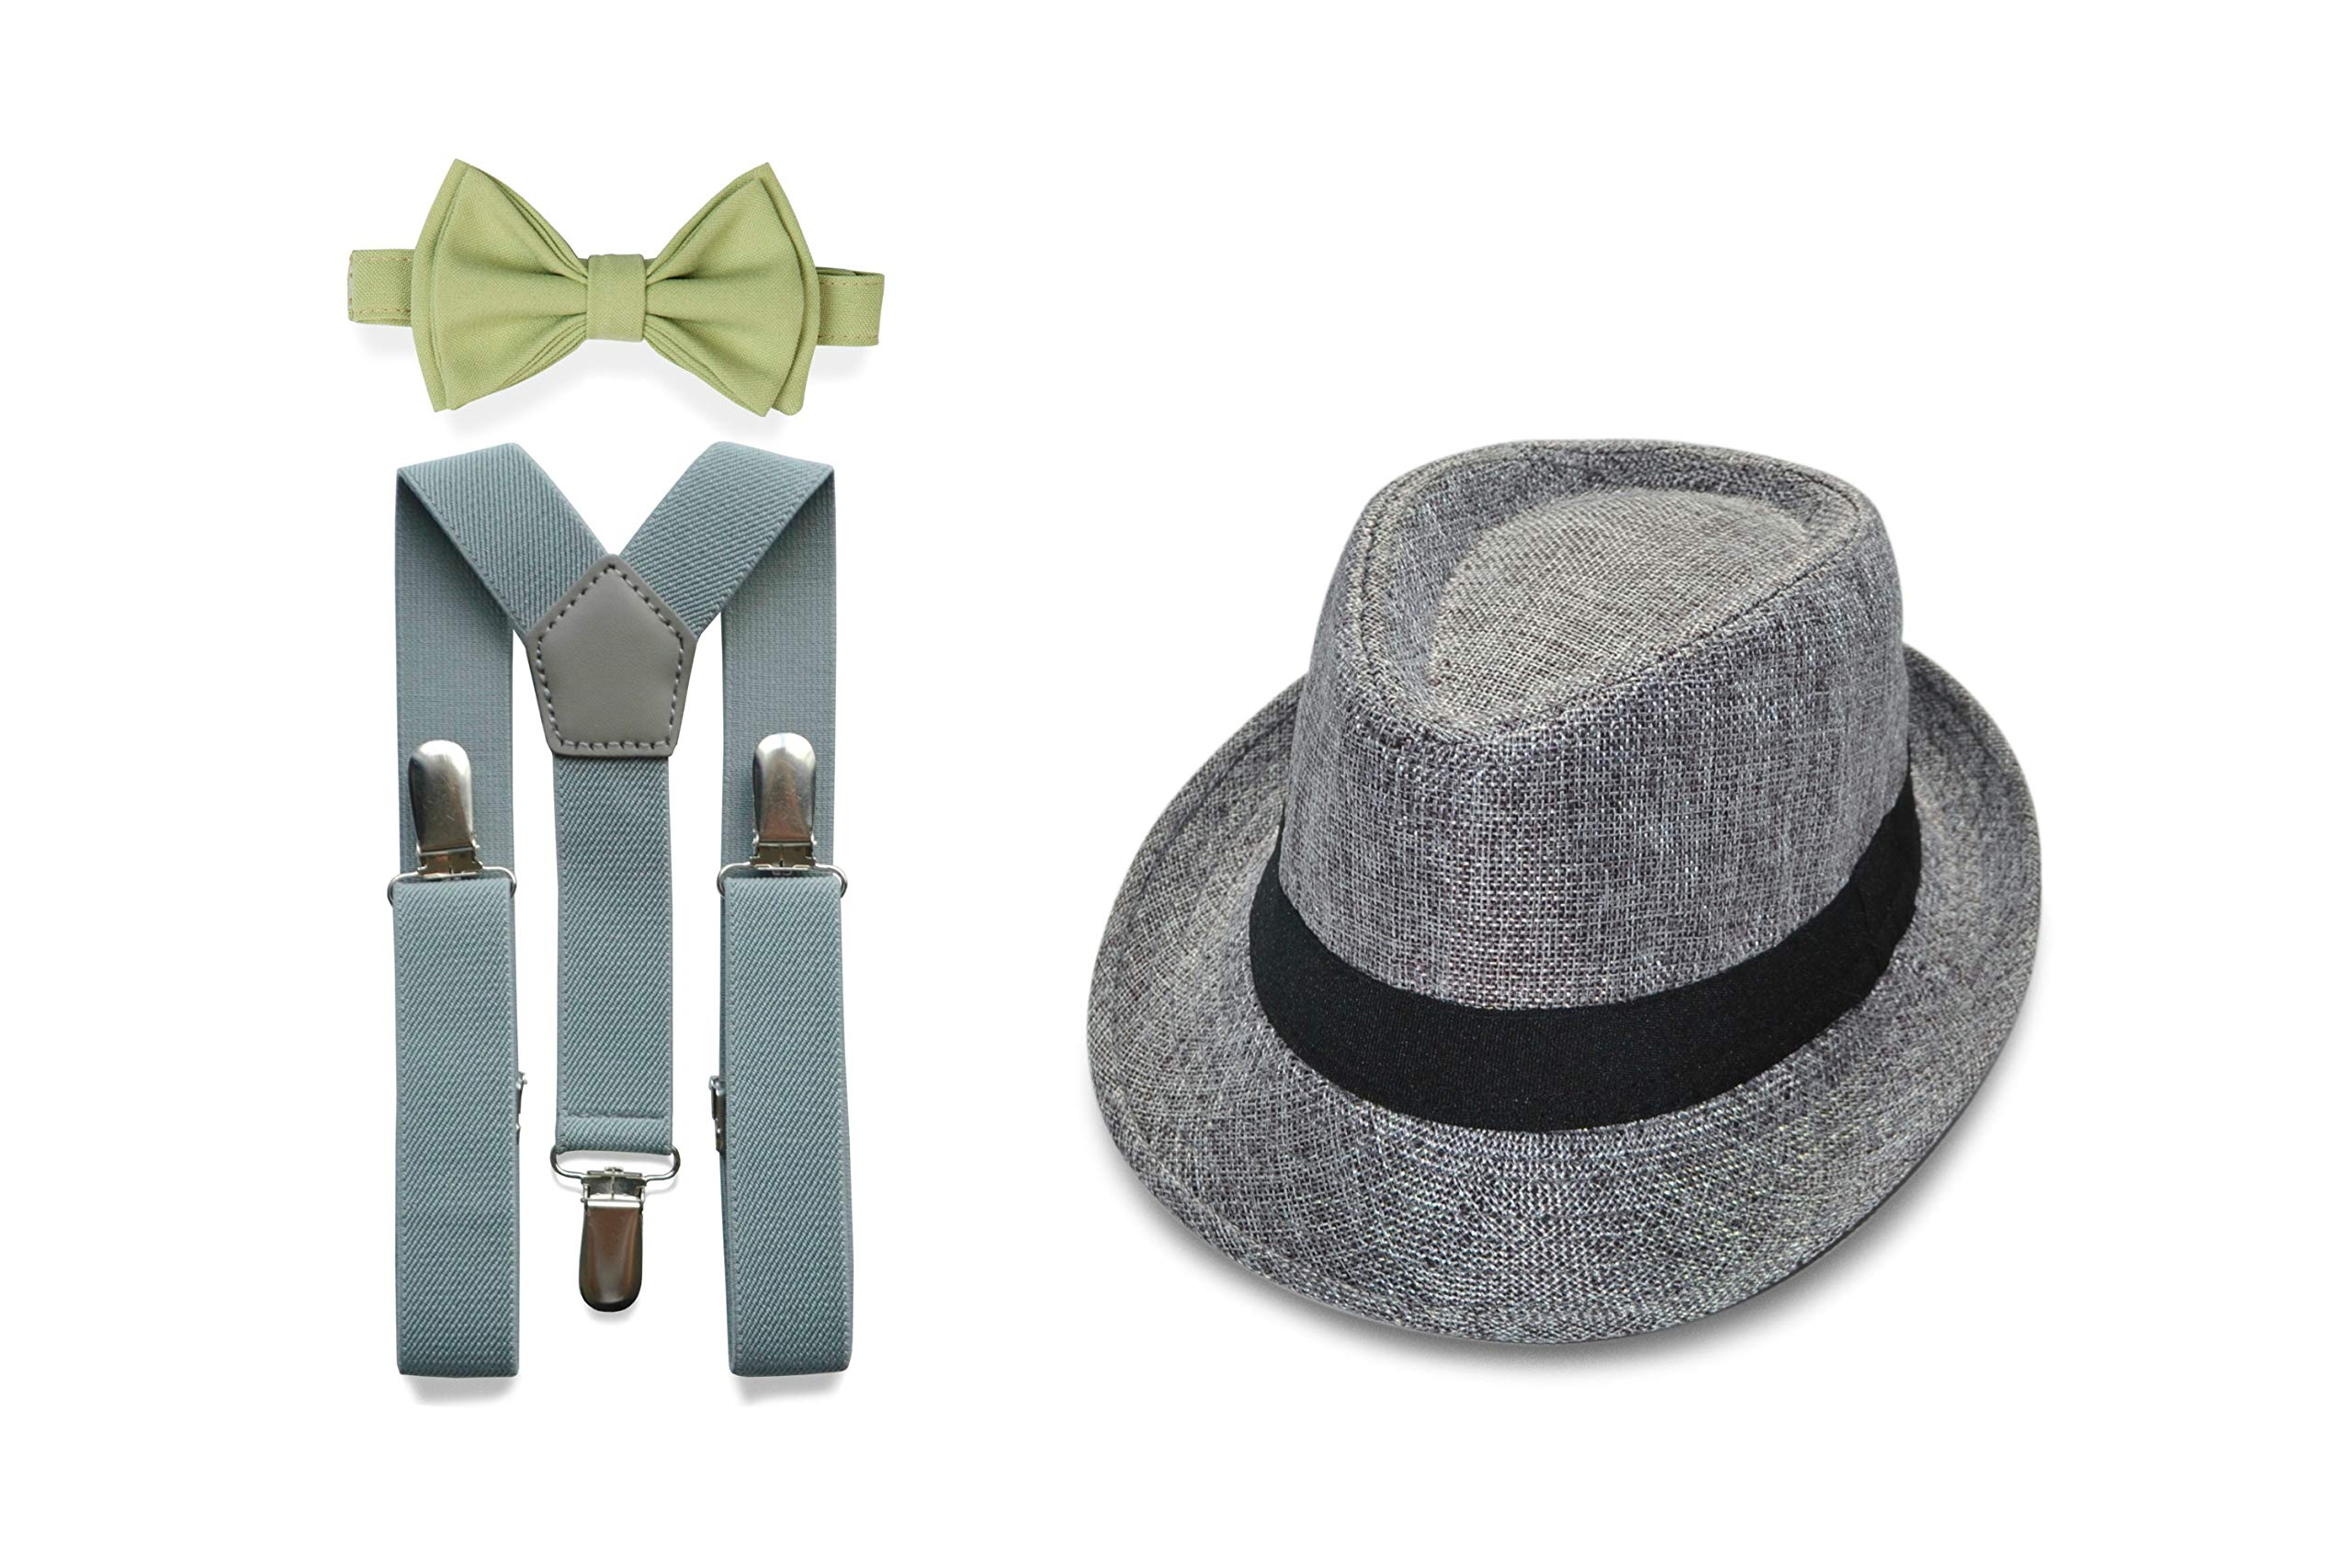 Armoniia Ring Bearer Outfit for Weddings includes Light Grey Suspenders & Bow Tie with Grey Fedora (1. Toddler (18 mo - 6 yrs), Light Grey Suspenders & Sage Bow Tie & Grey Fedora) by Armoniia